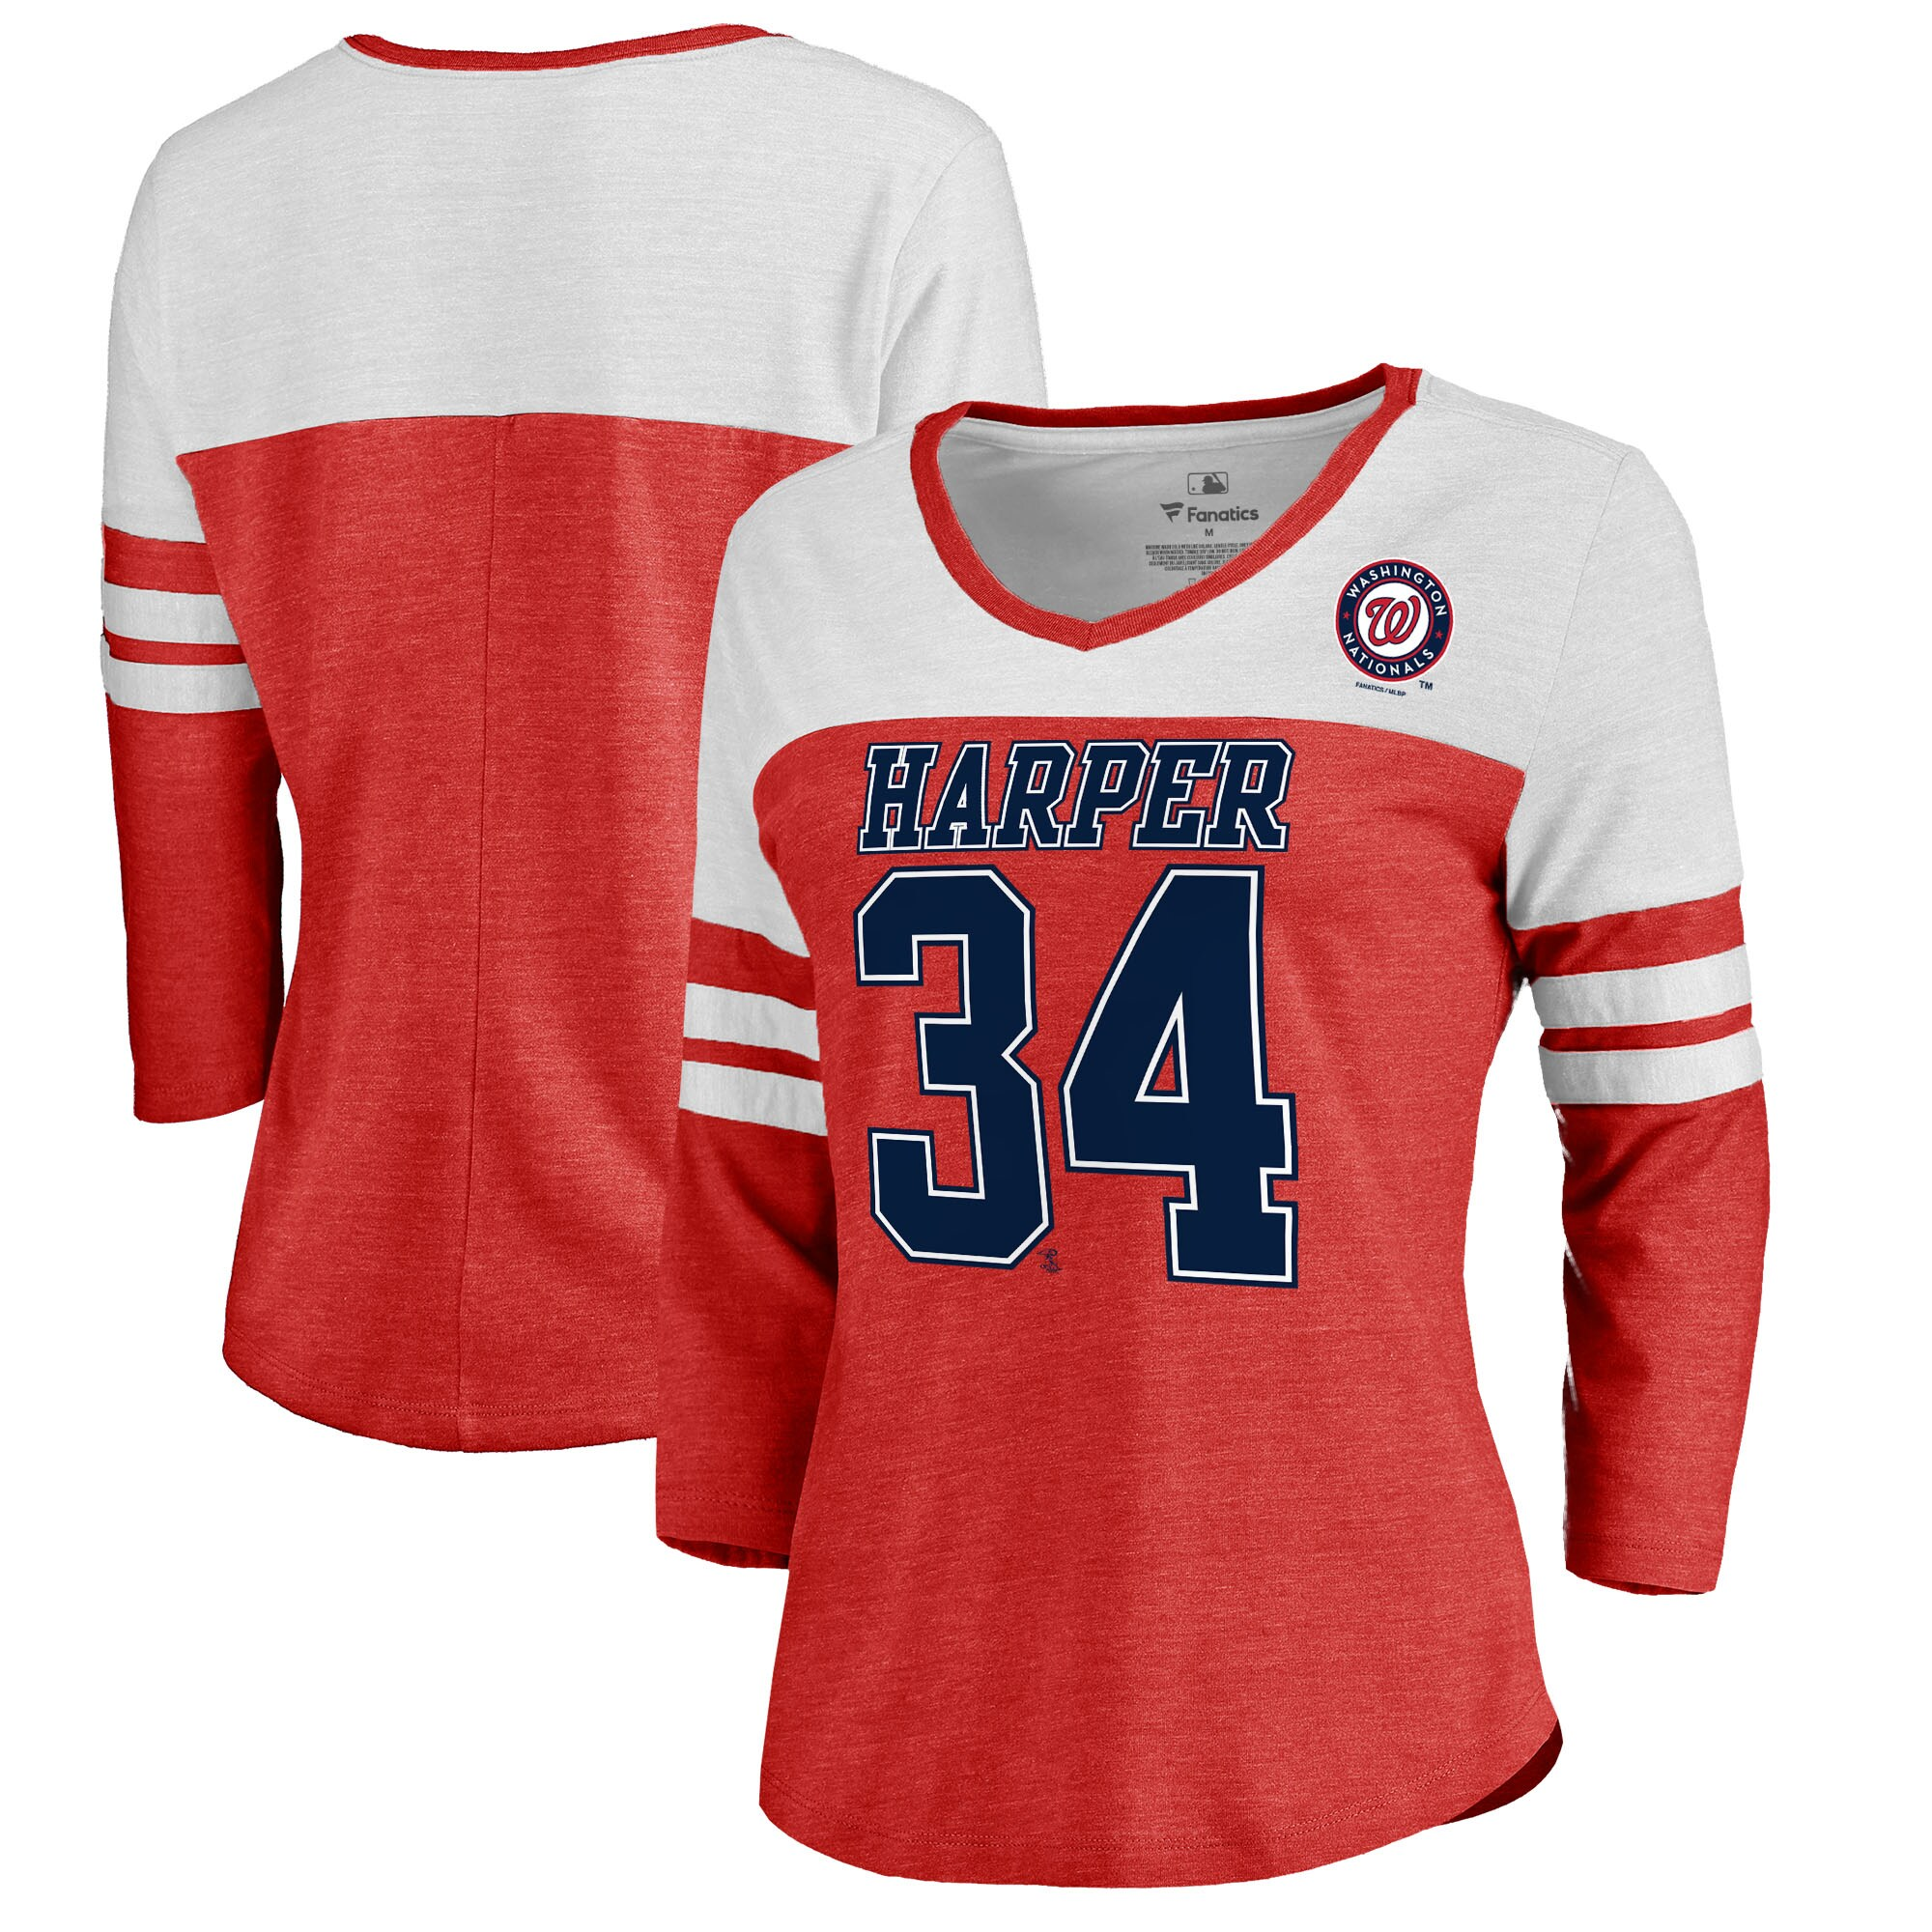 Bryce Harper Washington Nationals Fanatics Branded Women's Ace Name & Number 3/4-Sleeve V-Neck T-Shirt - Red/White